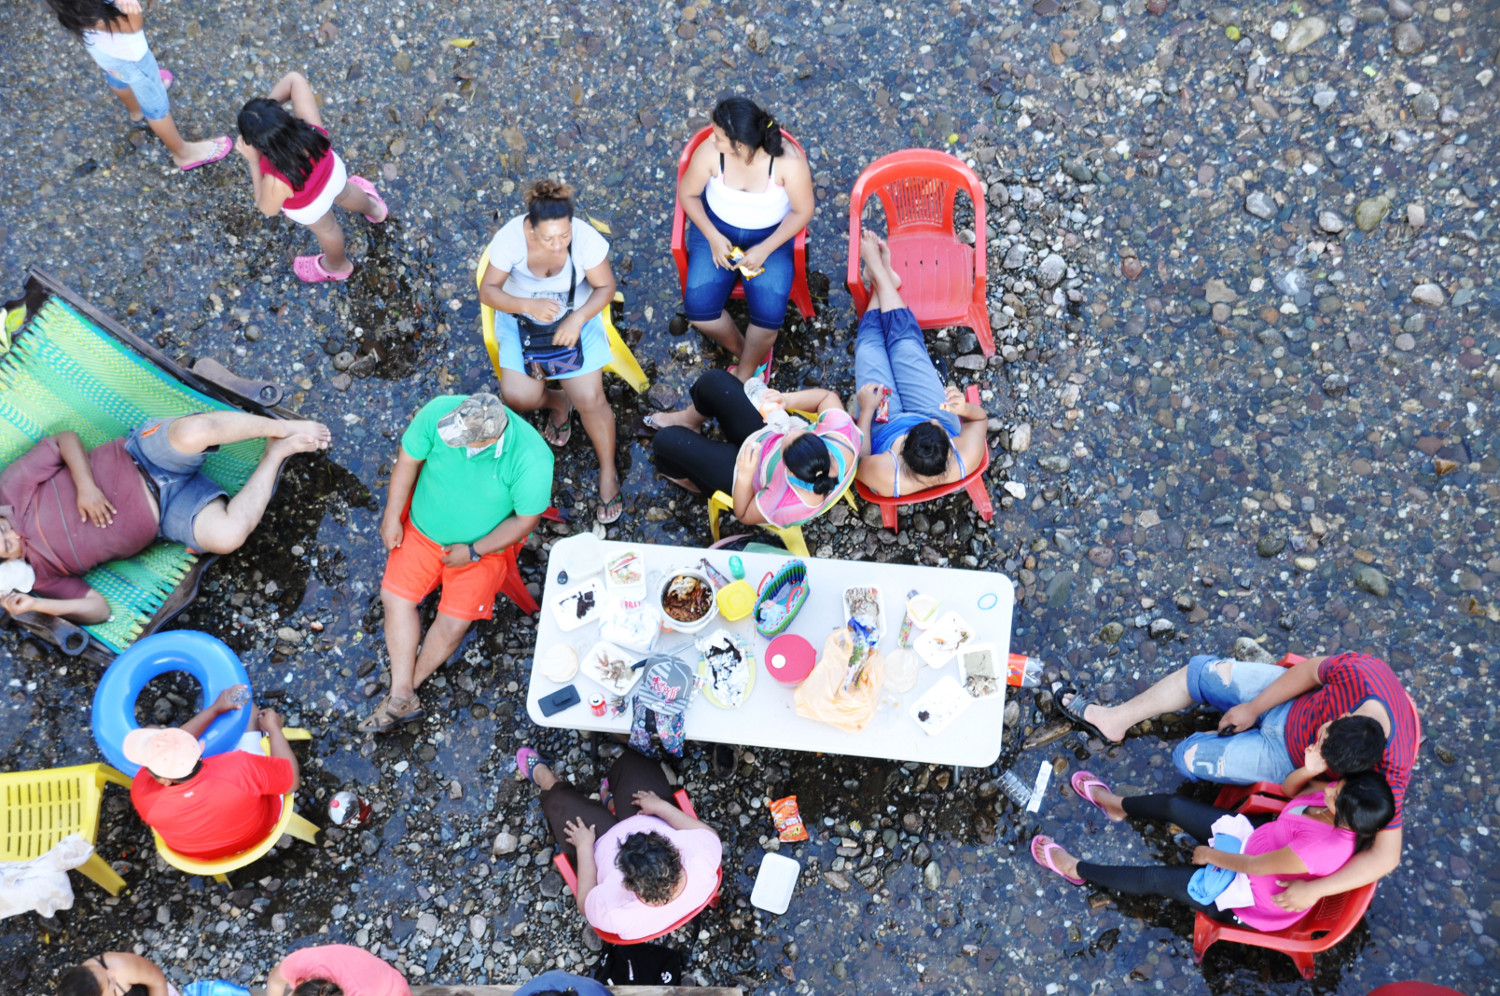 Mexikaner beim Wochenendpicknick mitten im Fluss | A weekend picnic for local Mexicans, in the middle of the river